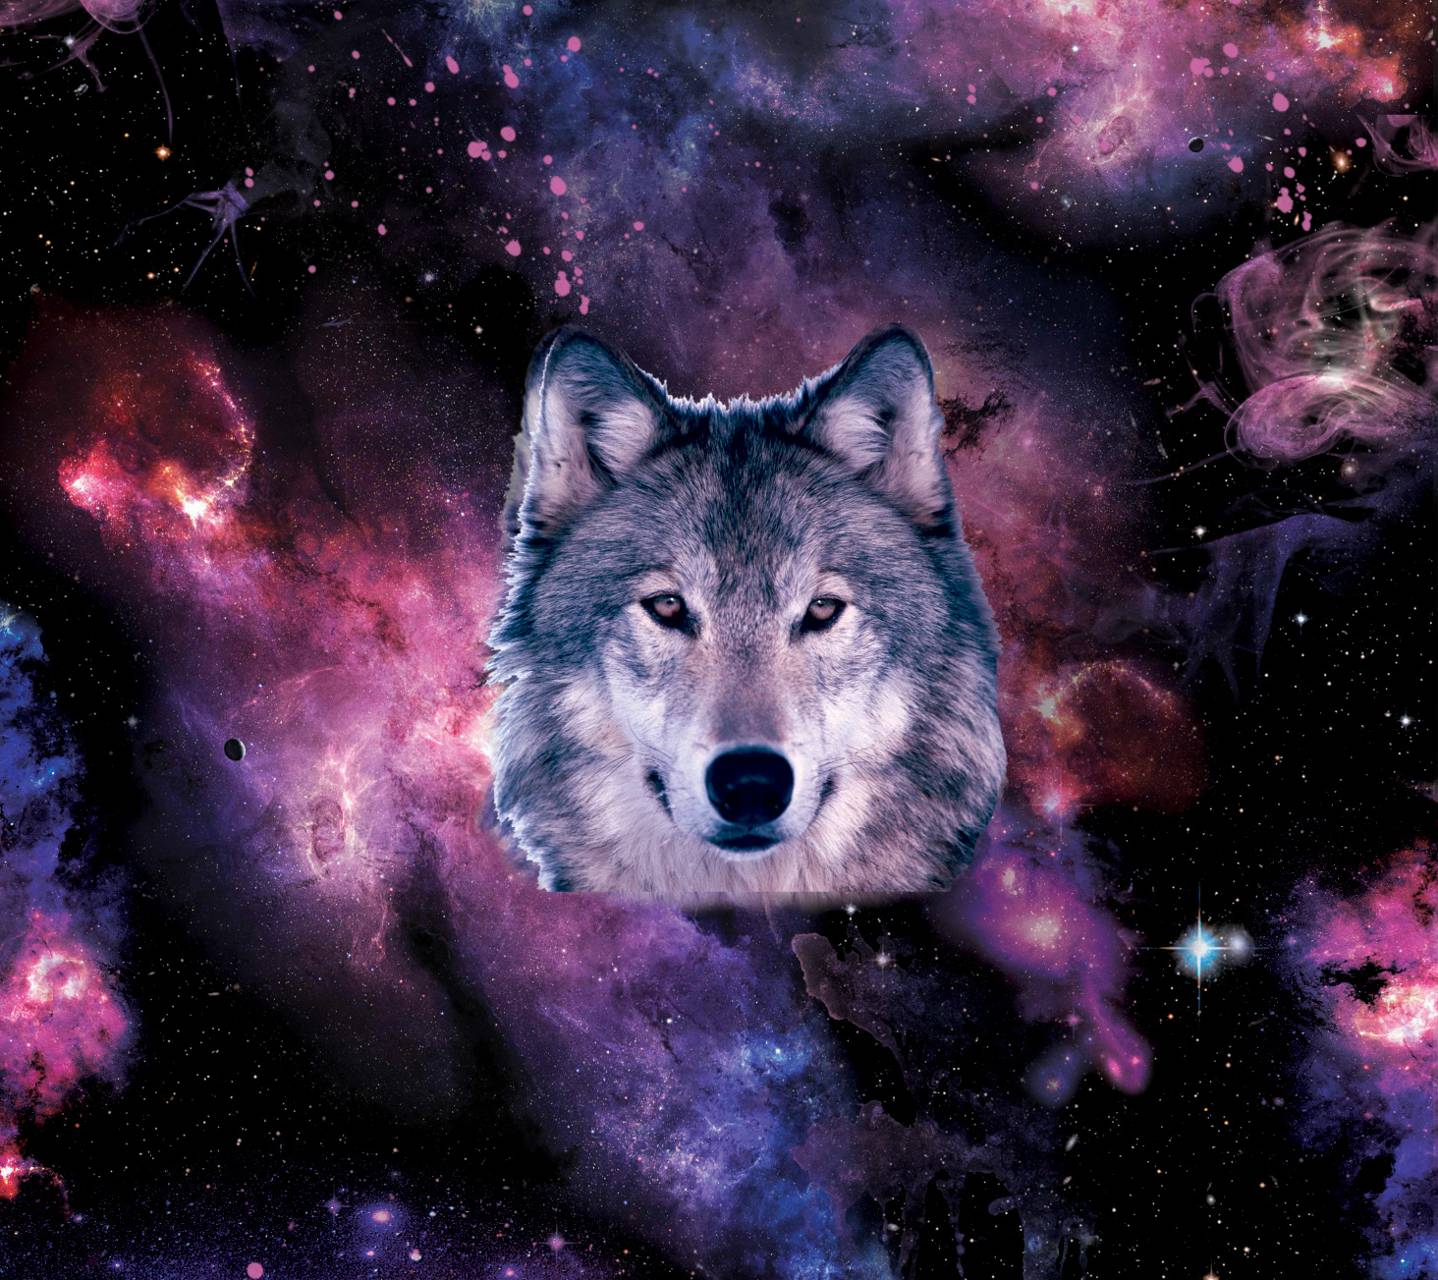 Wolf Iphone Wallpaper: Galaxy Wolf Wallpaper By Rejepo